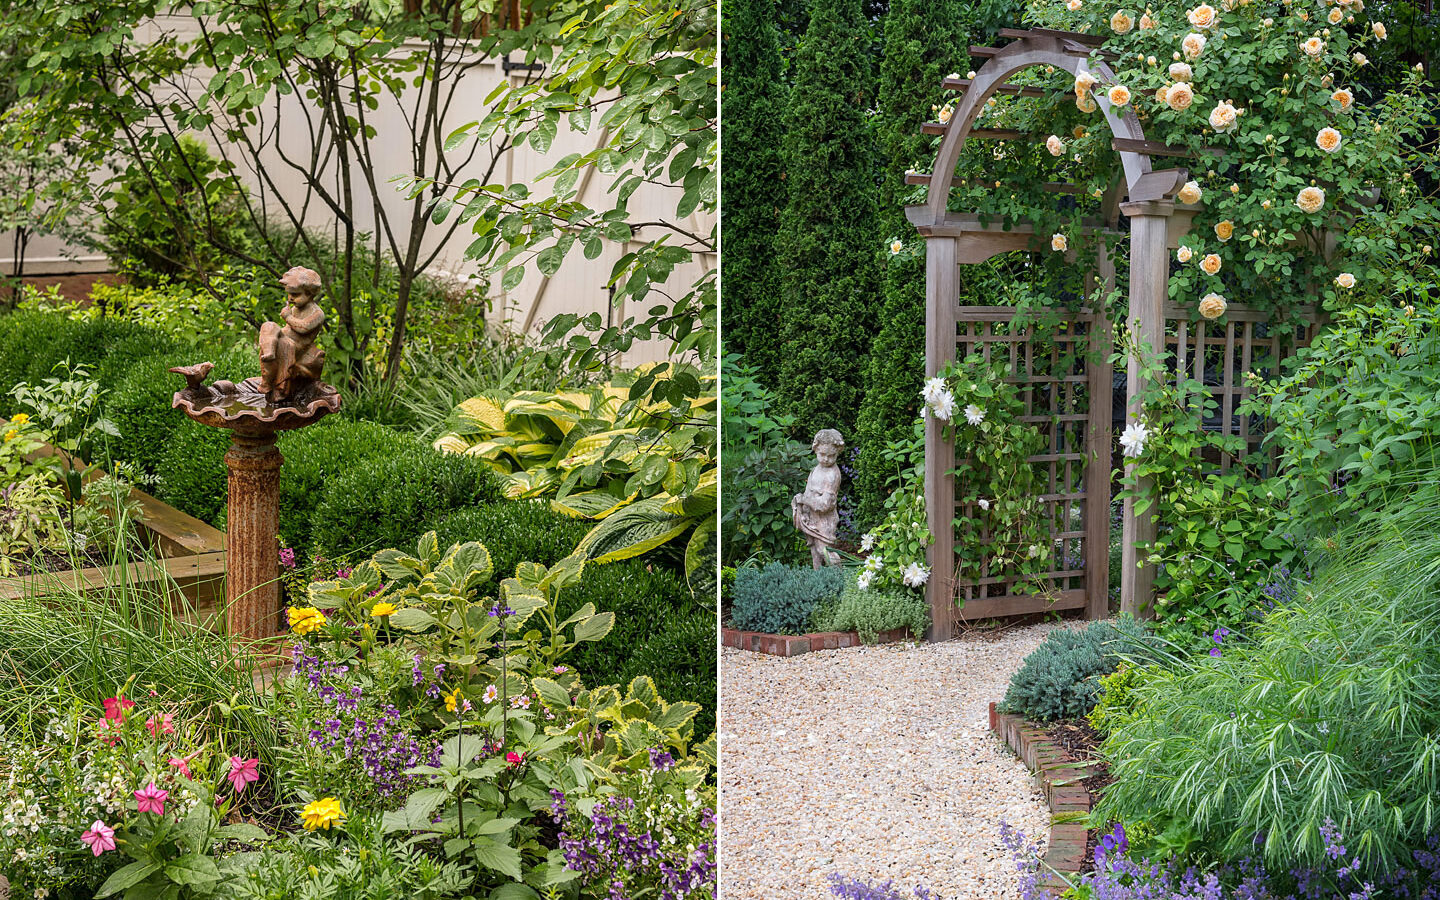 Garden plantings and details